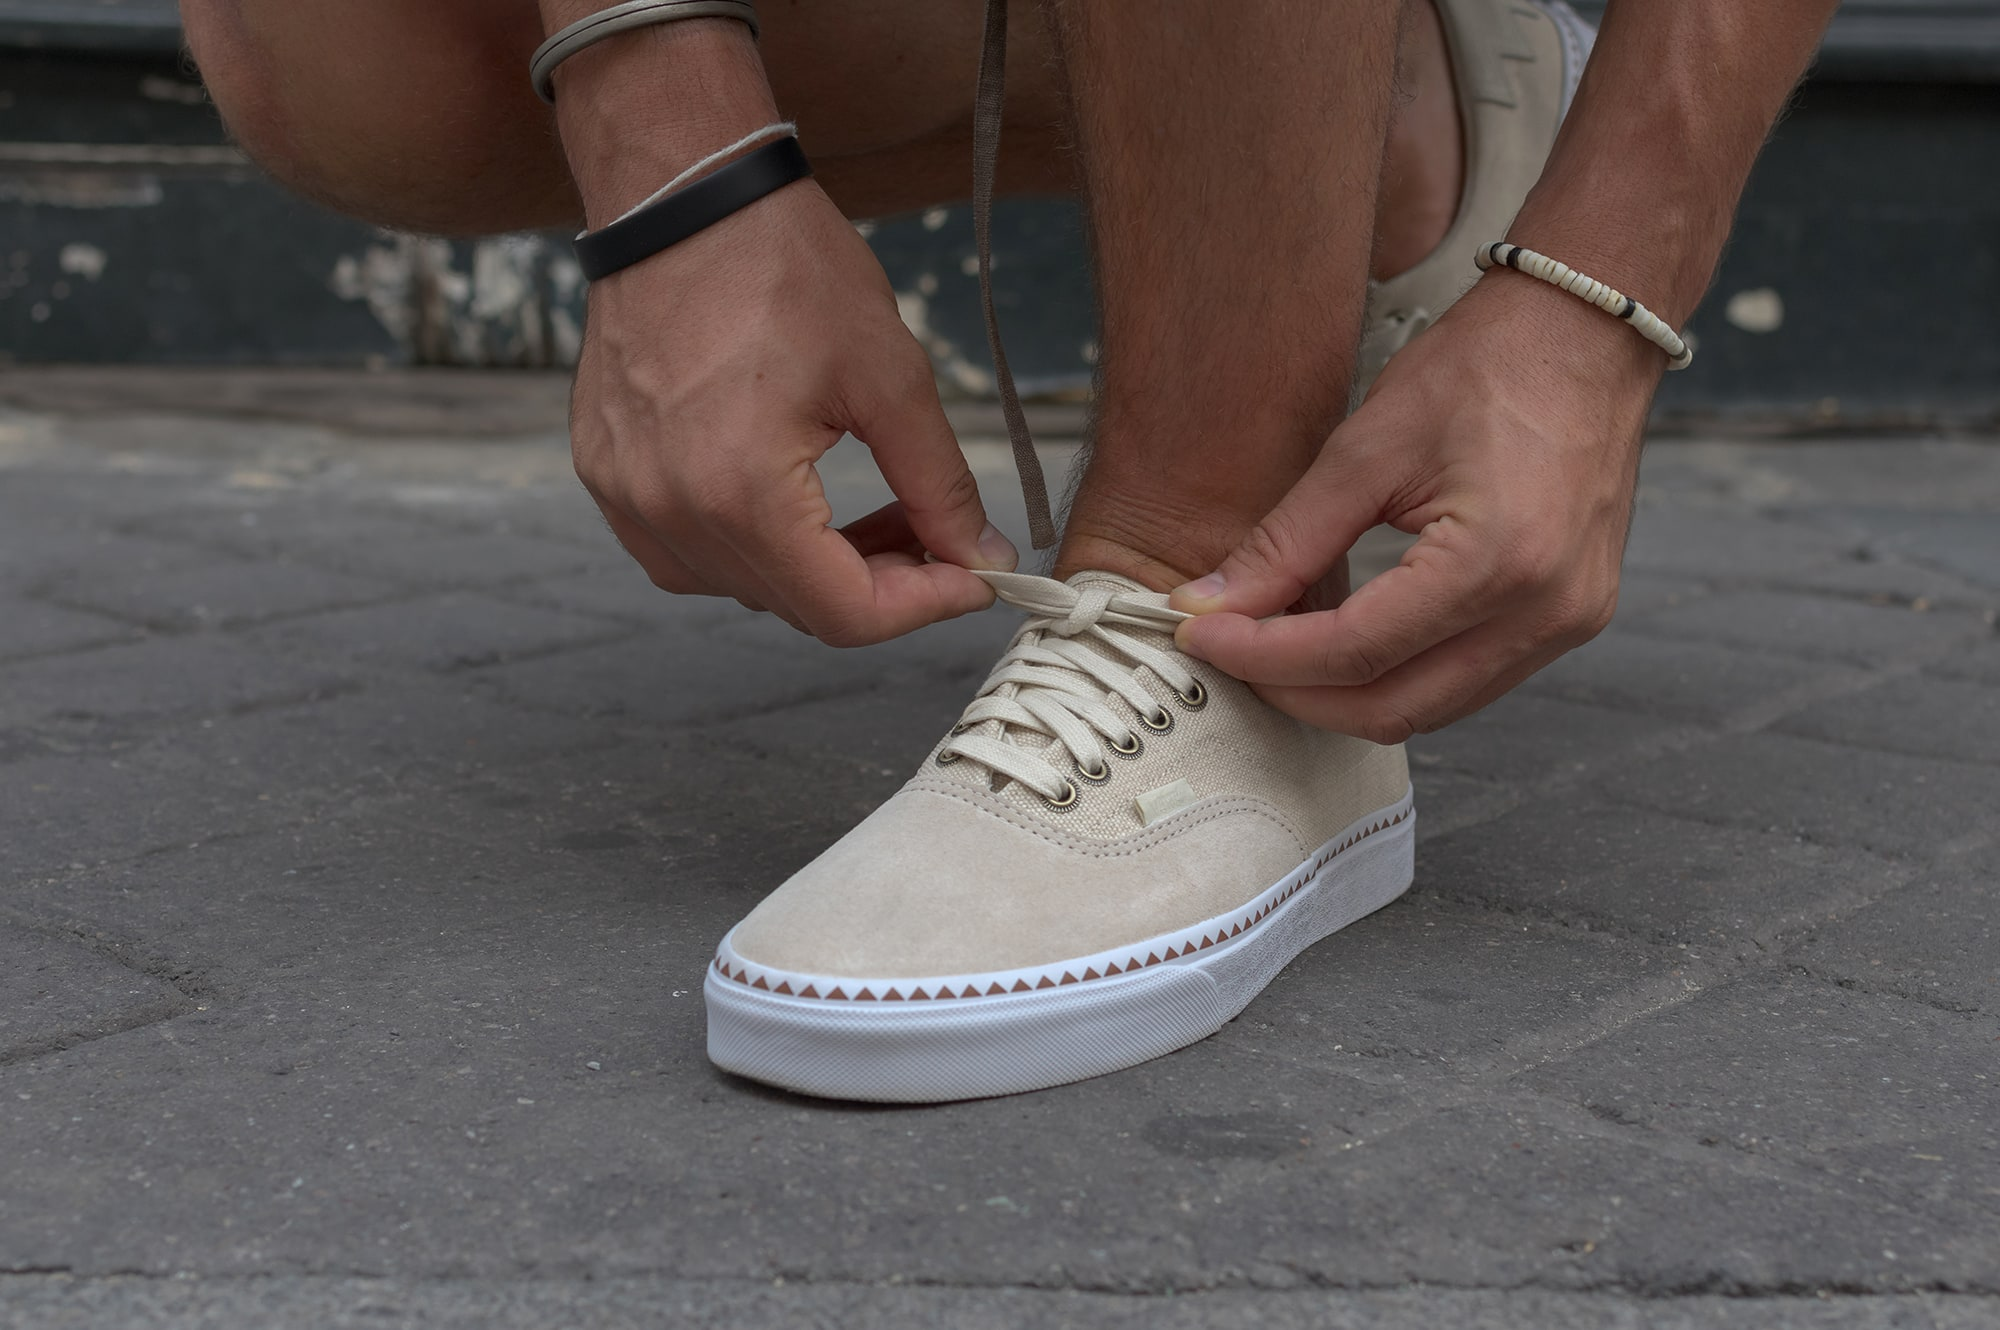 Noragi shuren projects in street heritage style with vans era native. sneakers and denim destroyed shorts